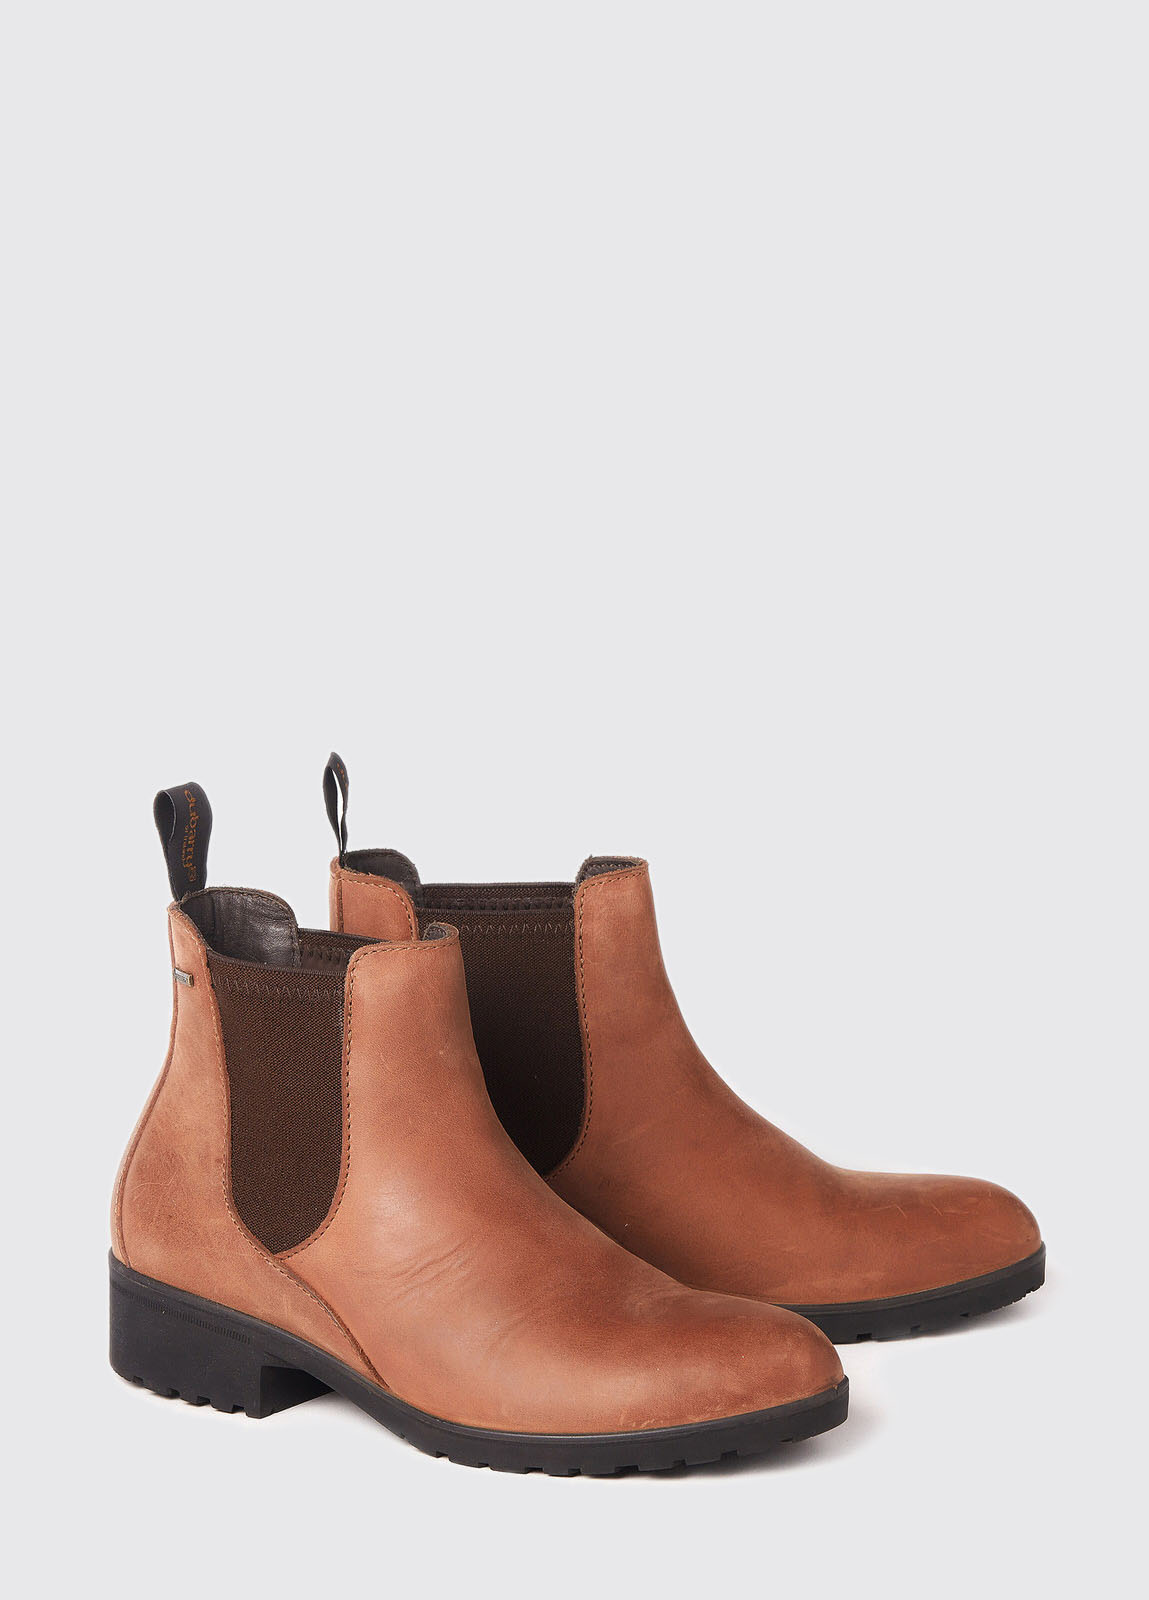 Waterford Damen Stiefelette - Chestnut